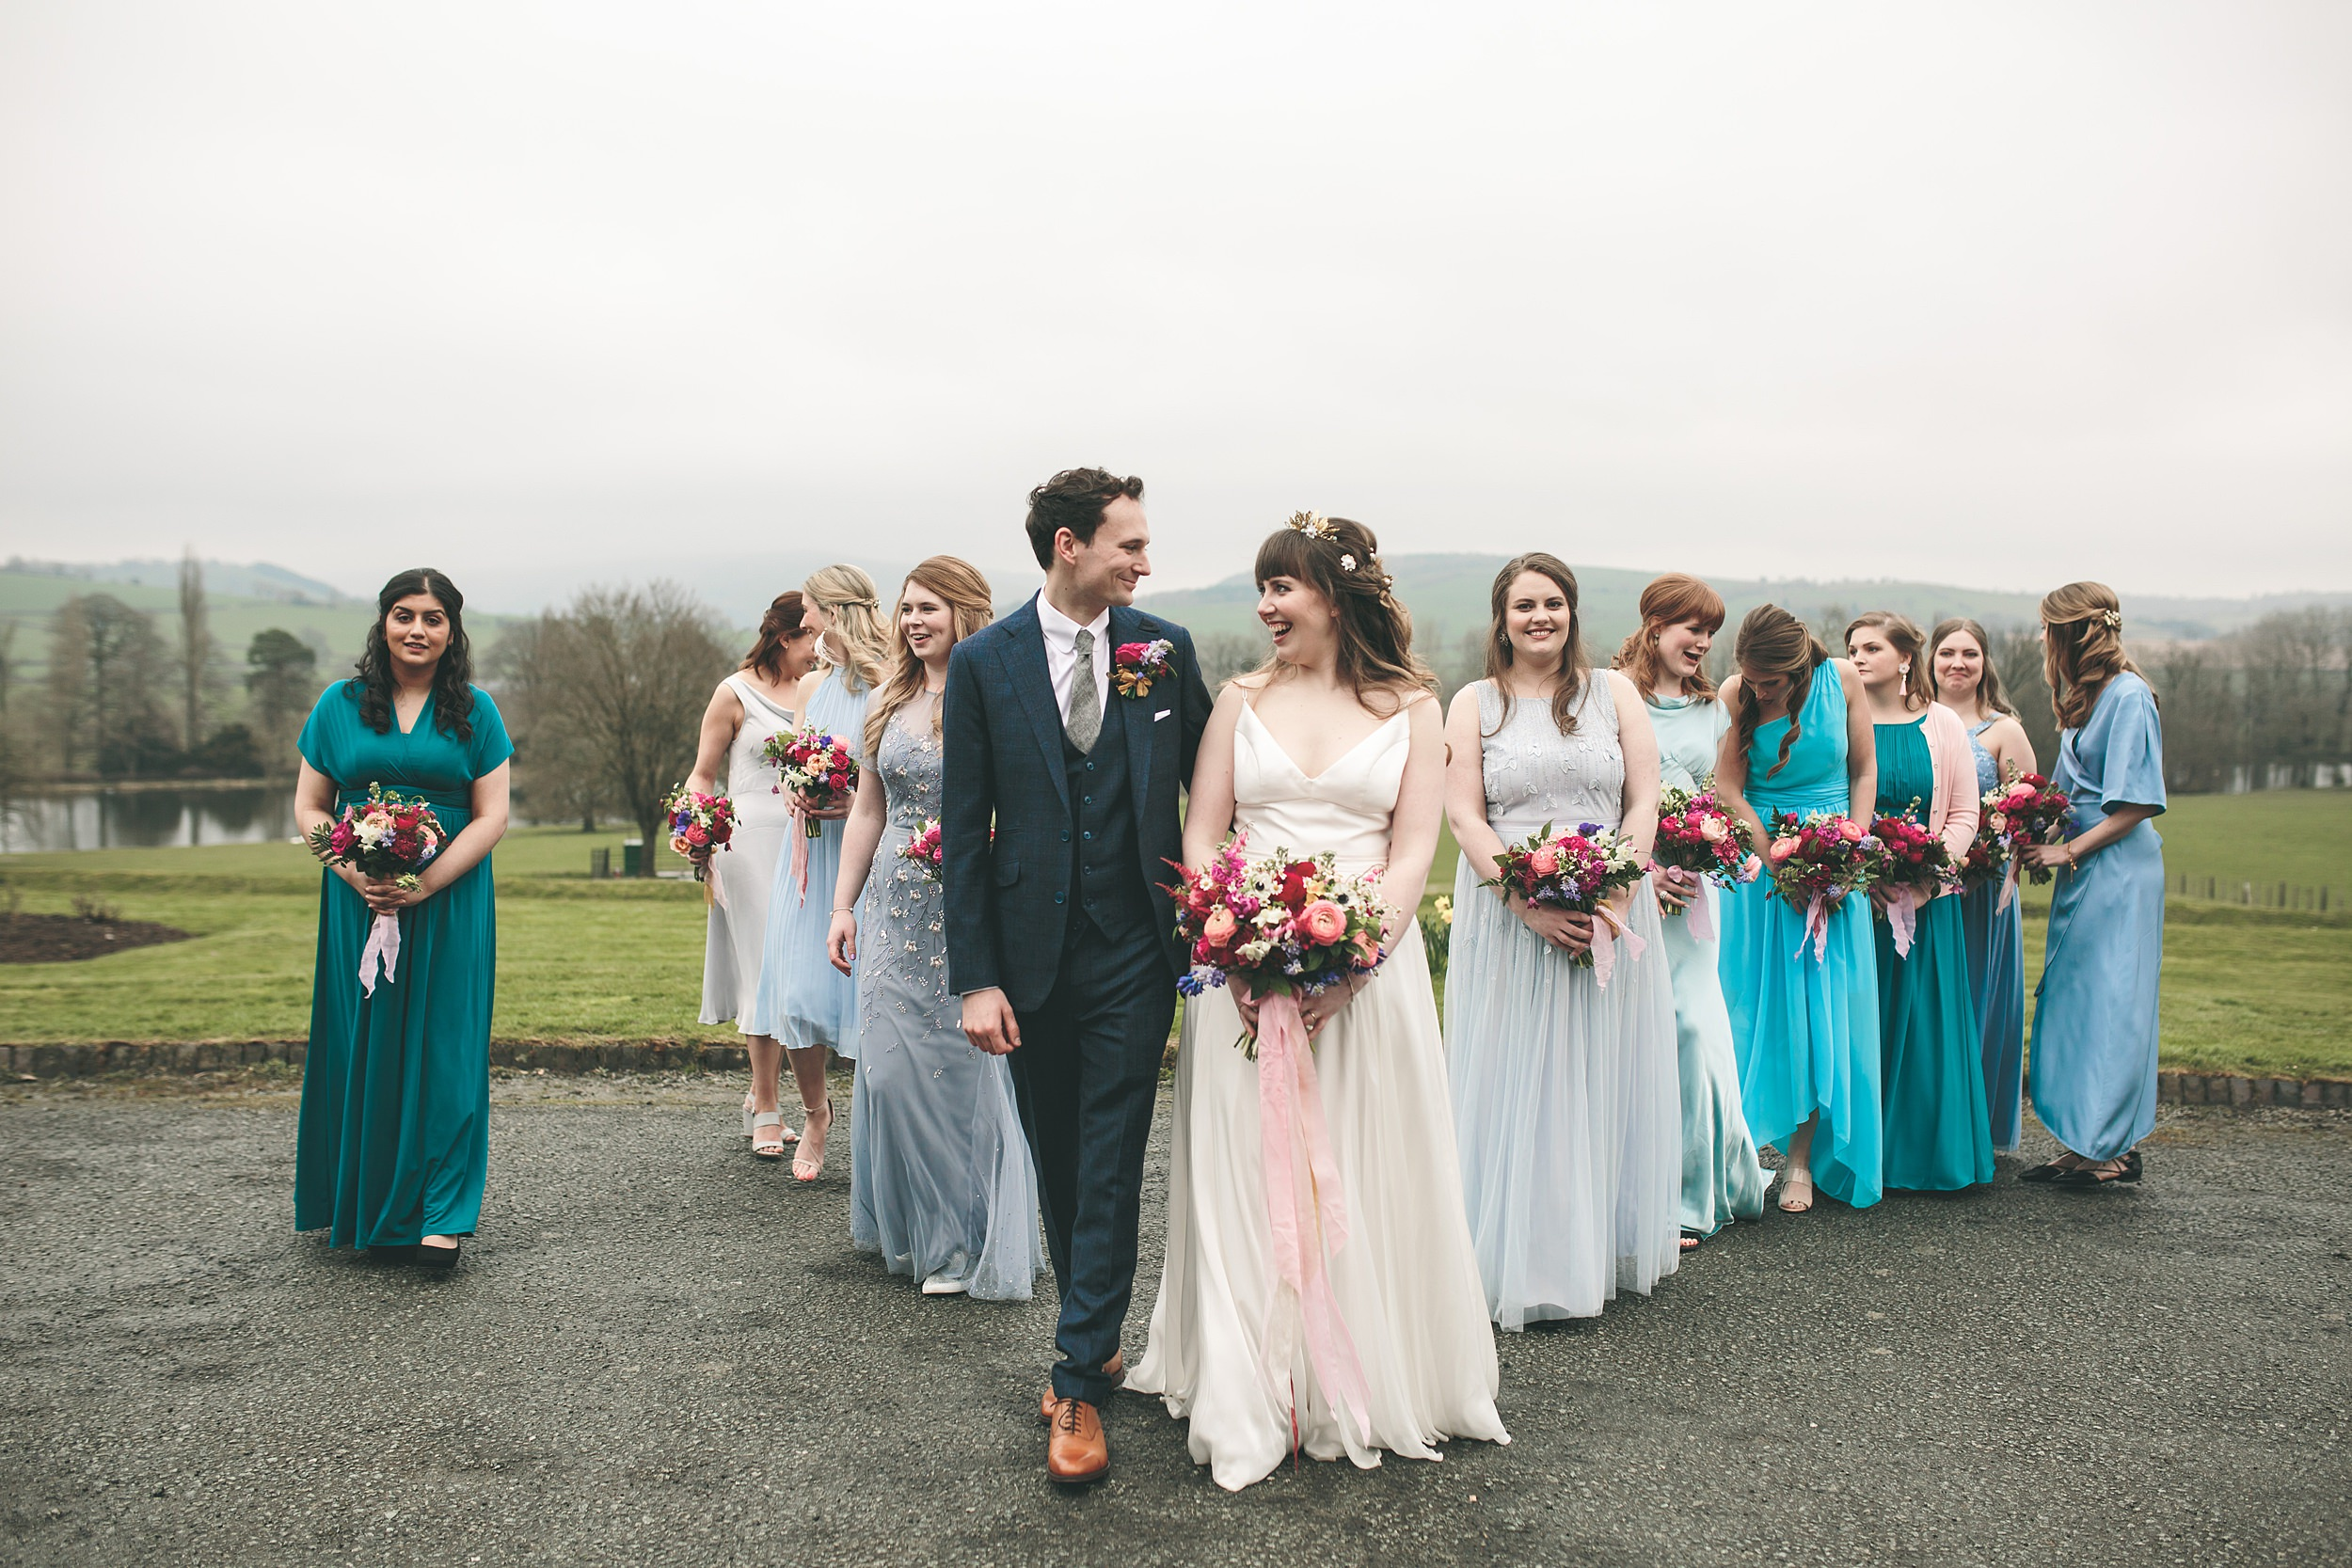 Wes Anderson Wedding Photography Cornwall Photographer Walcot Hall 00071.jpg